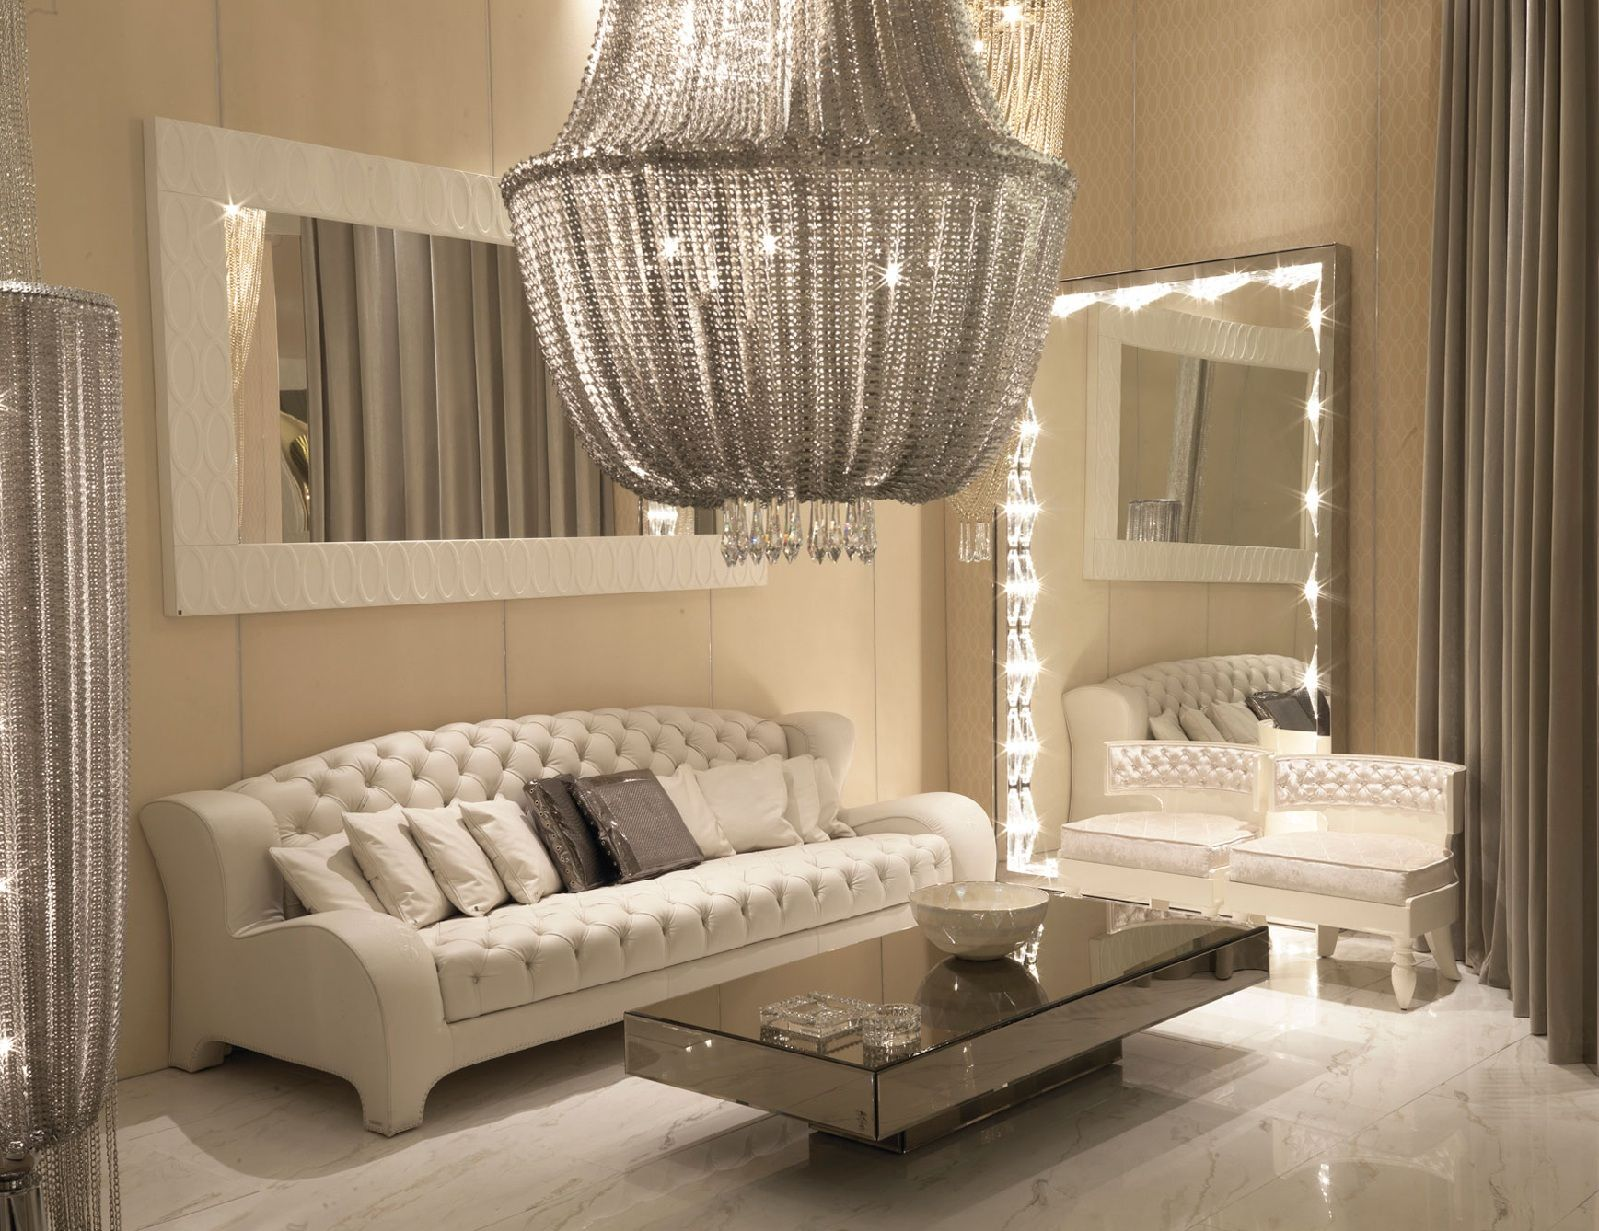 Hollywood Luxe Interiors Designer Furniture Beautiful Home Decor More Luxury Hollywood Interior Design Inspirations